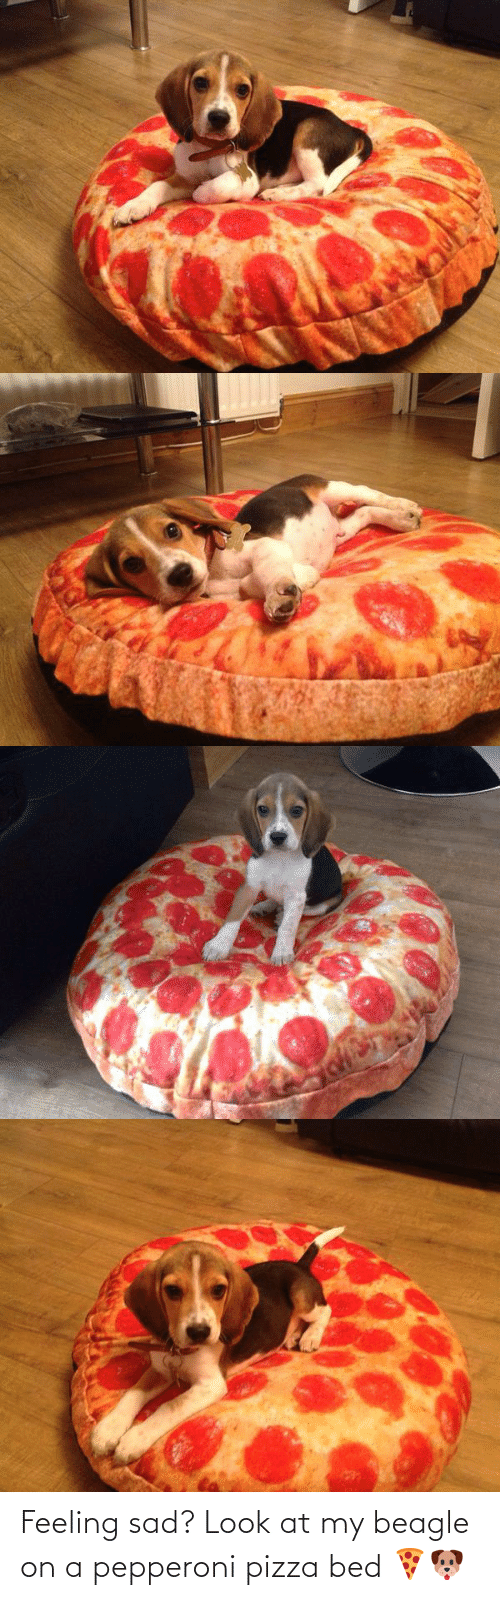 Look At: Feeling sad? Look at my beagle on a pepperoni pizza bed 🍕🐶